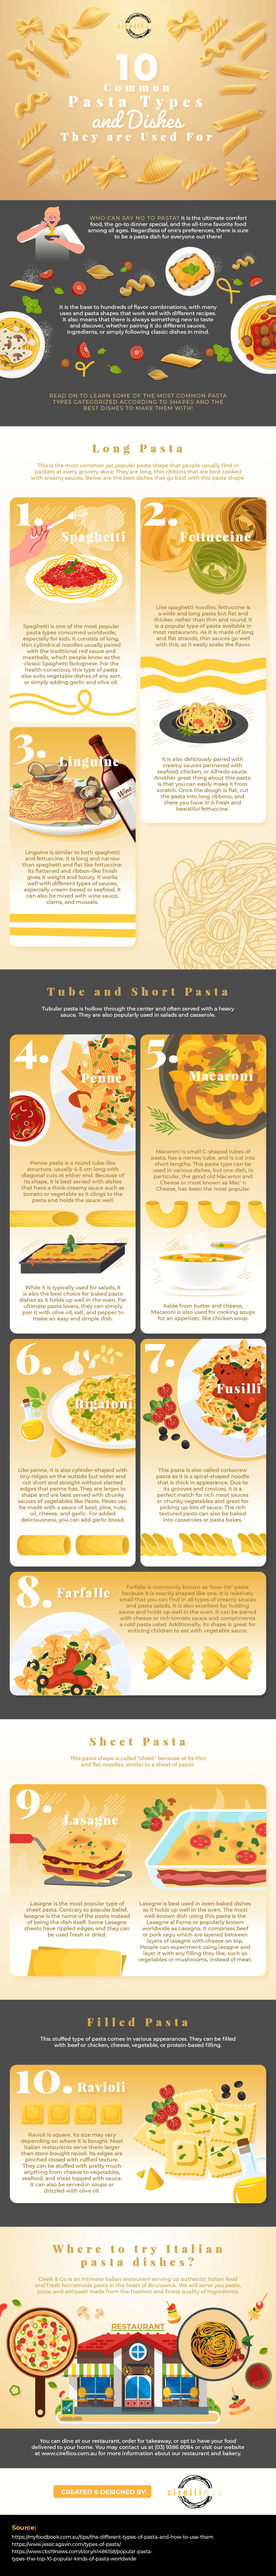 Pasta Types and Dishes They are Used For